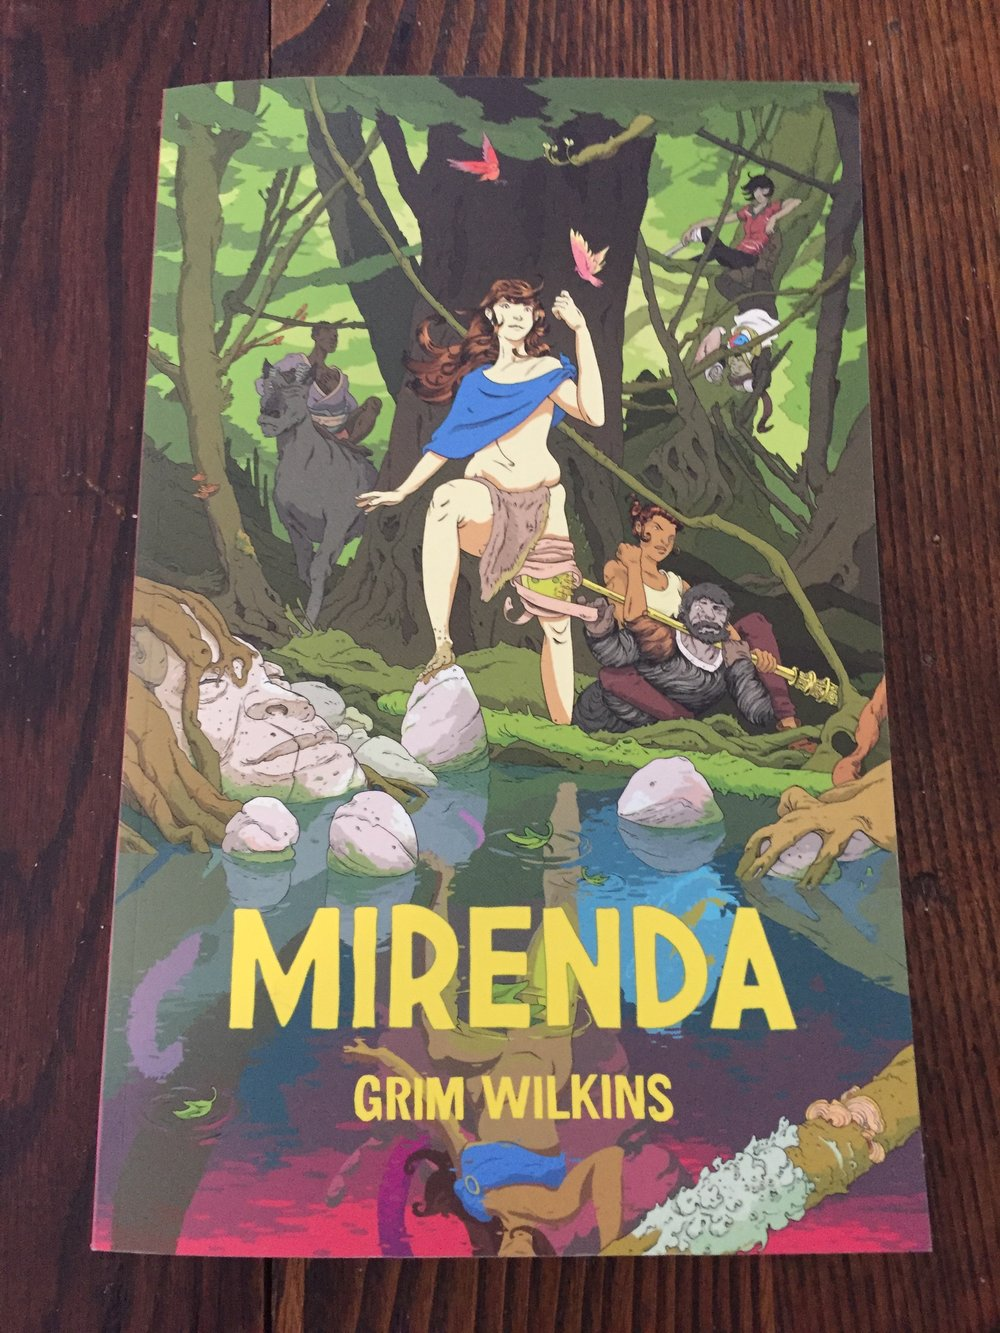 The front cover of Mirdena by Grim Wilkins